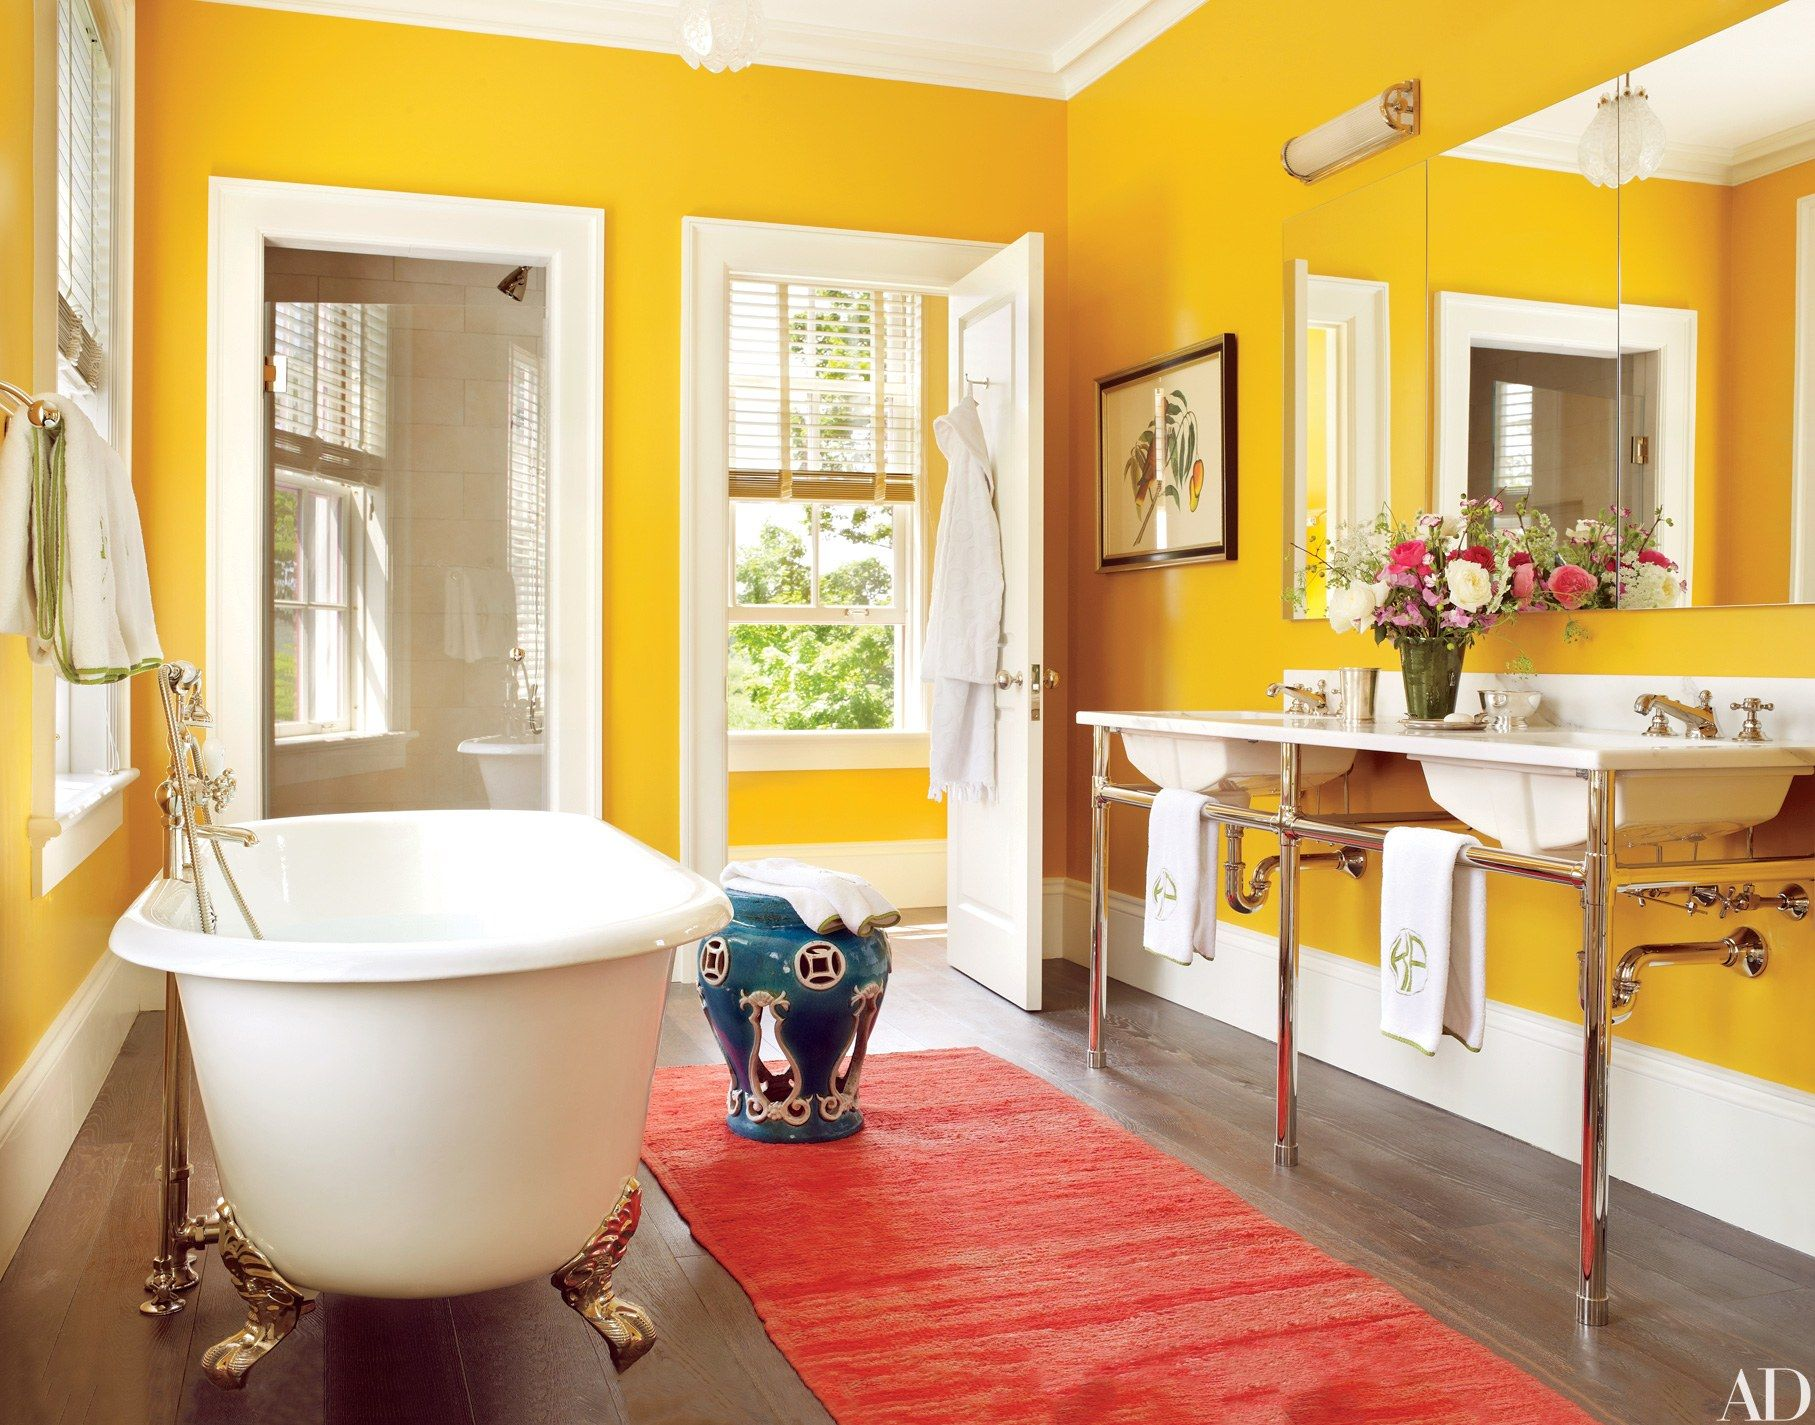 15 colorful bathrooms ideas that will inspire you to go bold